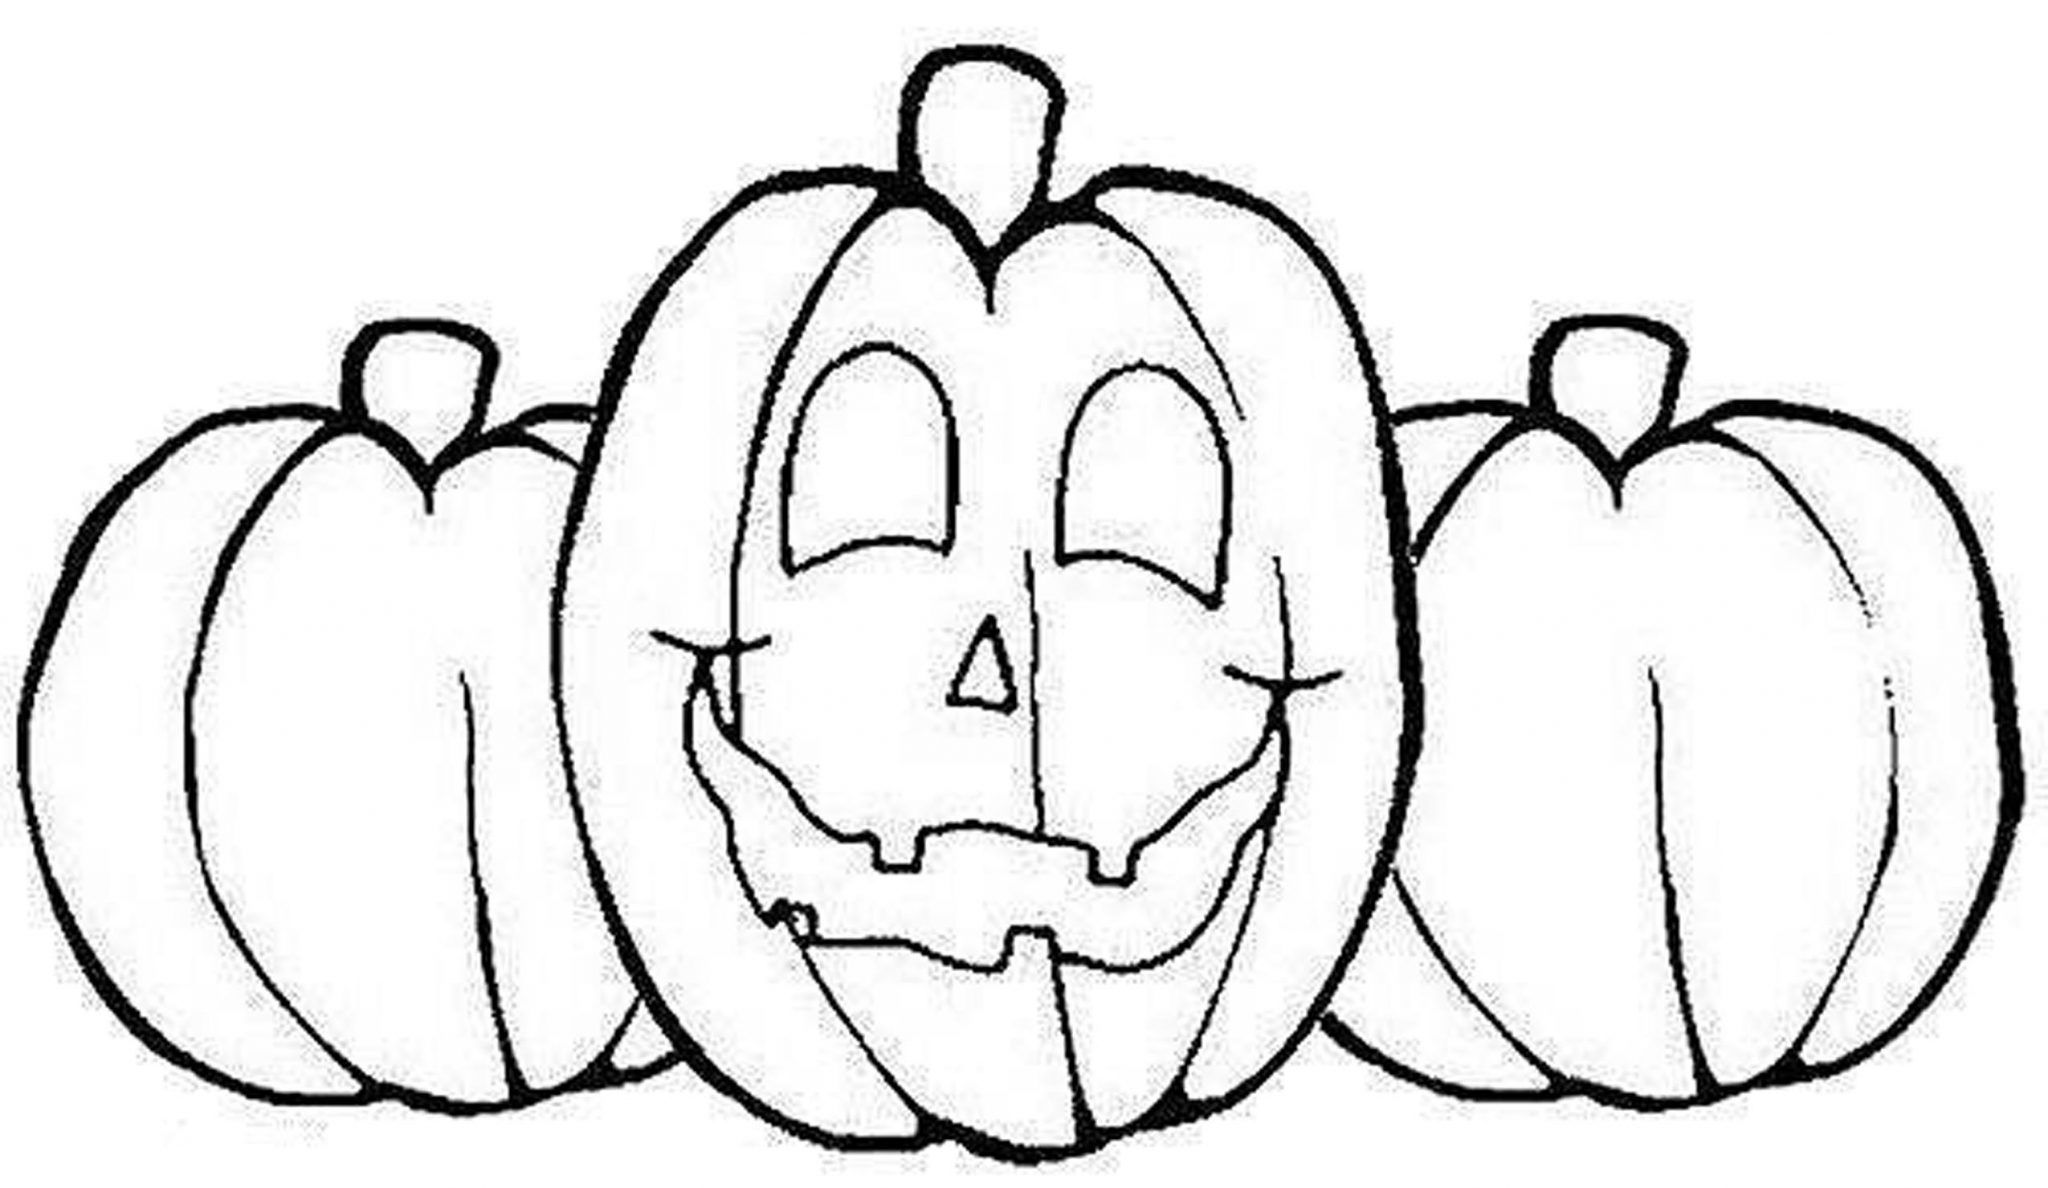 Print U0026 Download Pumpkin Coloring Pages And Benefits Of Drawing For Kids Pumpkin Coloring Sheet Pumpkin Coloring Pages Halloween Coloring Pages